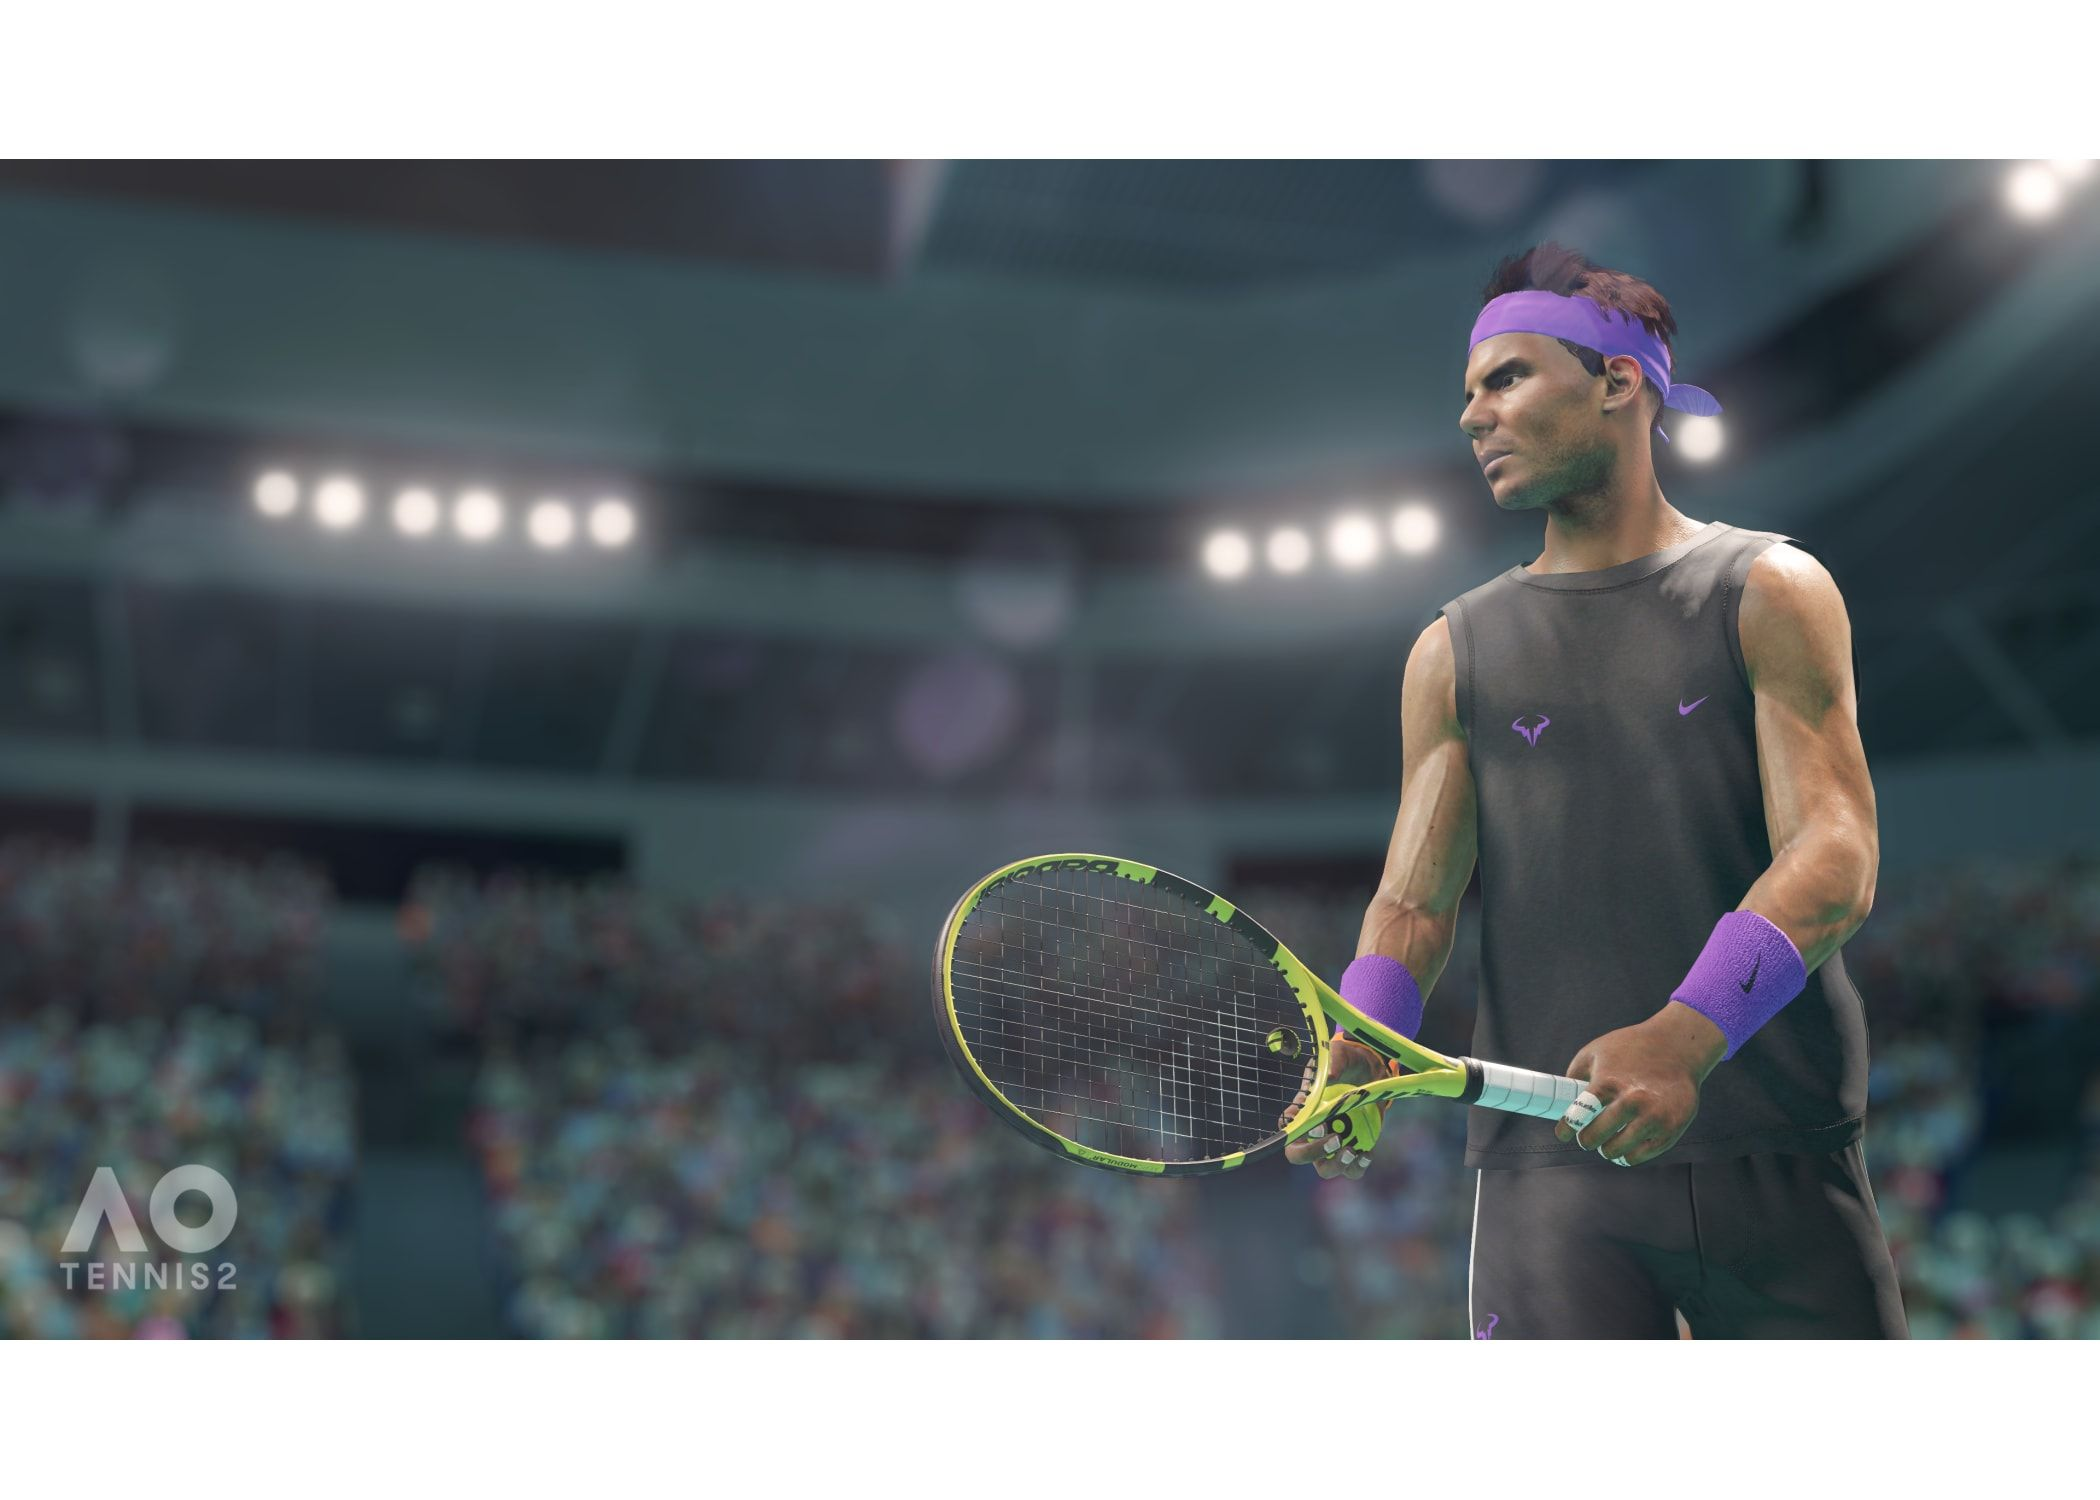 Buy Ao Tennis 2 On Playstation 4 Game Affiliate Aff Ao Buy Tennis Game Playstation In 2020 Tennis Nintendo Switch Xbox One Games